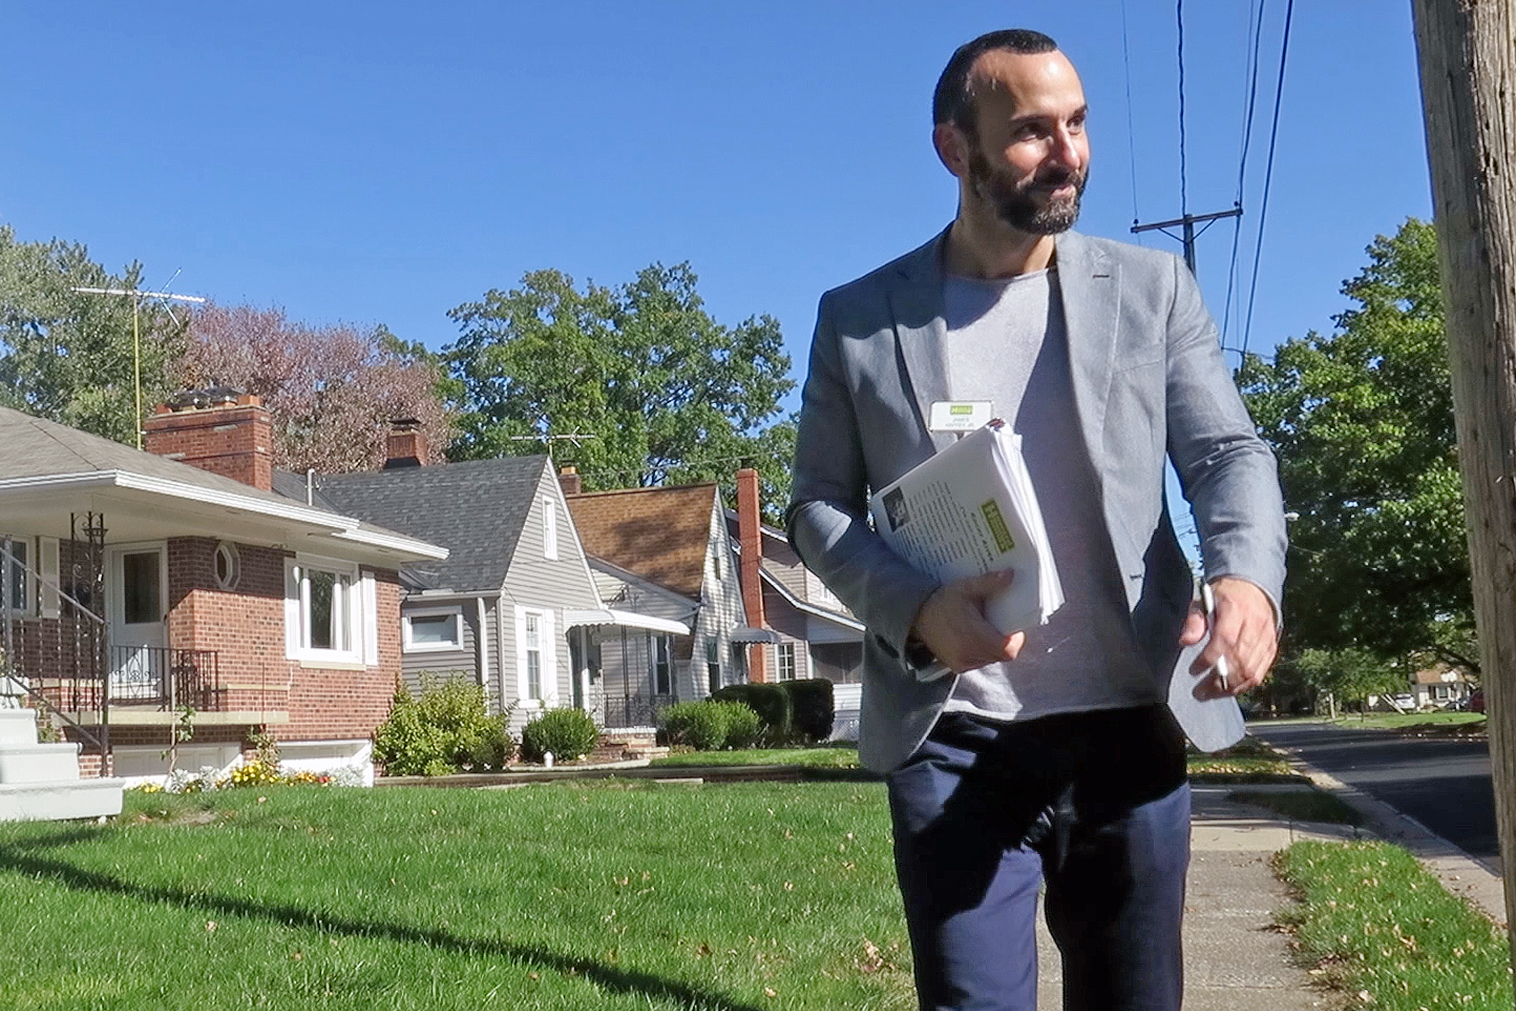 """Competition is good,"" says realtor Jim Haffey, as goes door-to-door in Rocky River, handing up information on recent home sales and hoping to find potential clients. ""It's making me step my game up."""